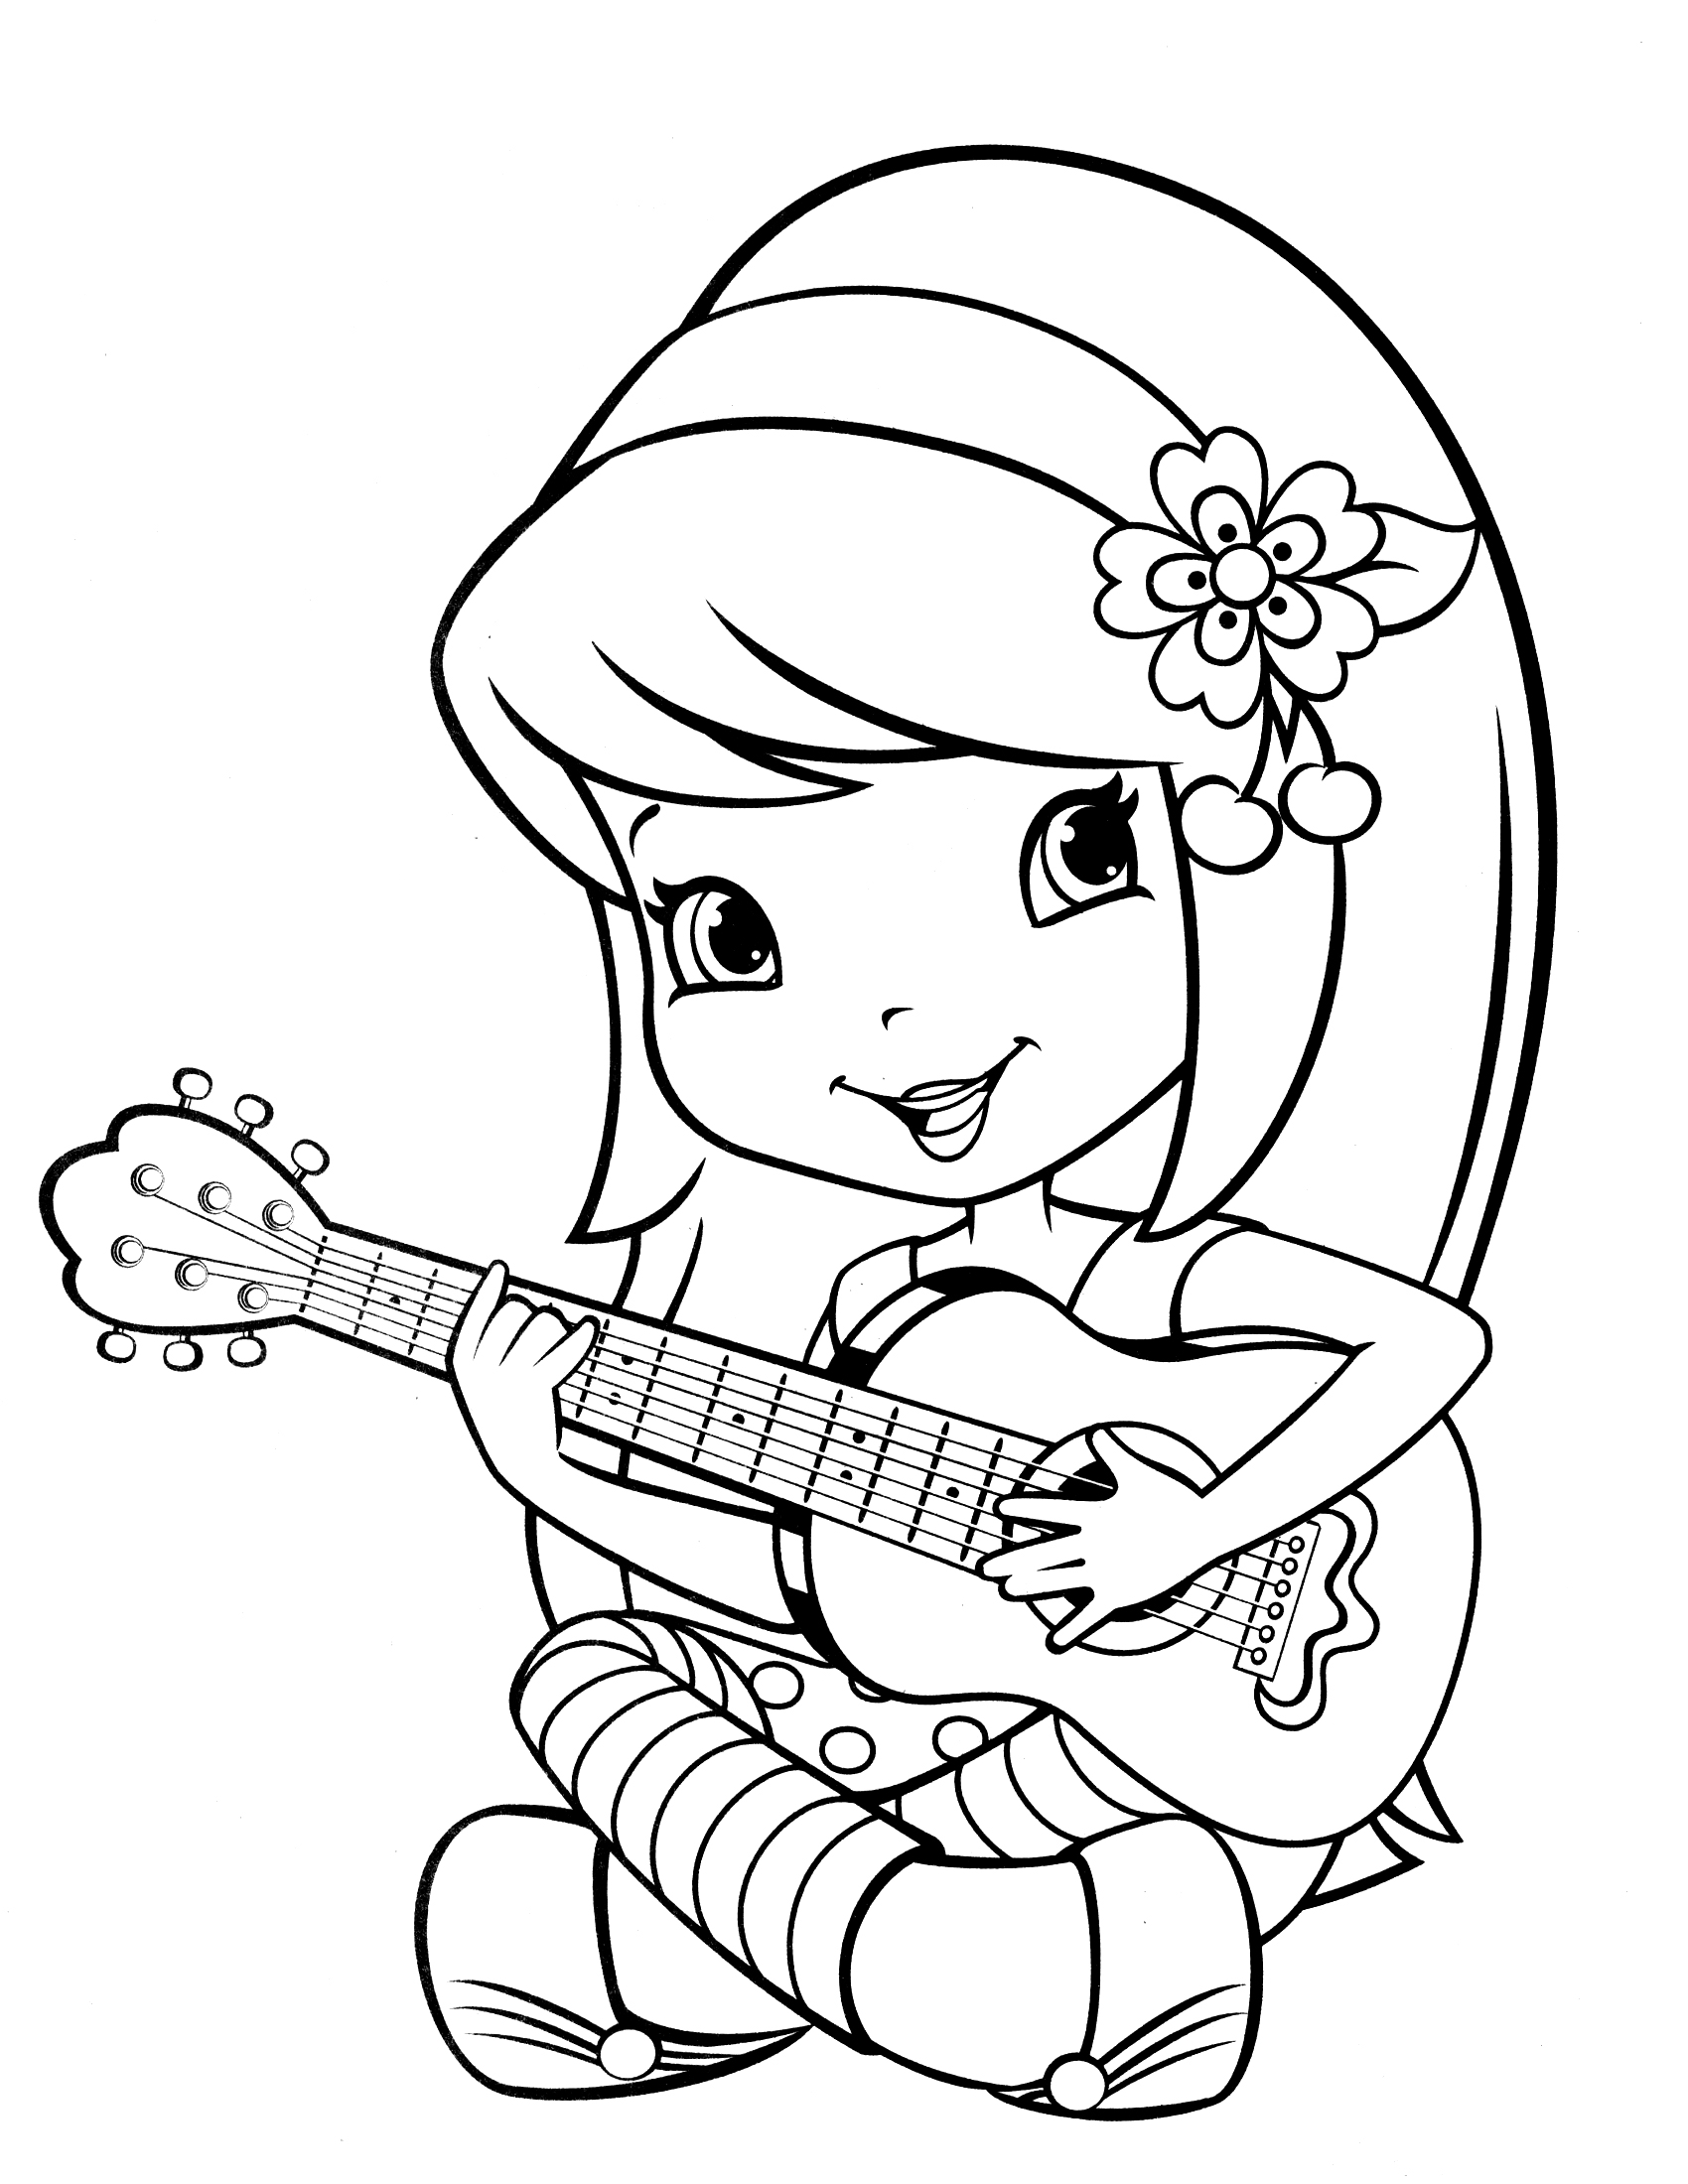 Disney Coloring Pages | Only Coloring Pages